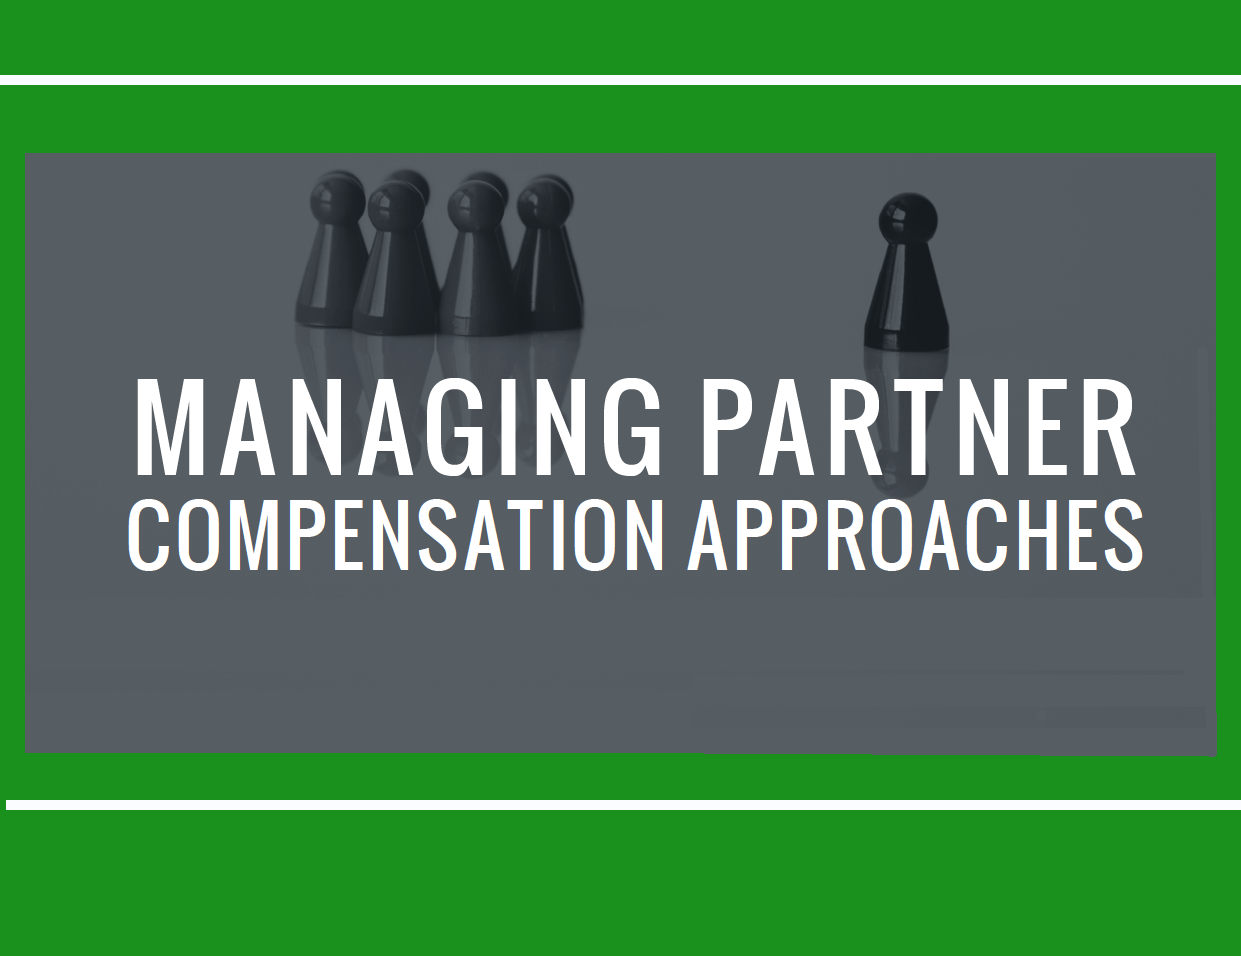 ManagingPartner_Compensation_Approaches-2